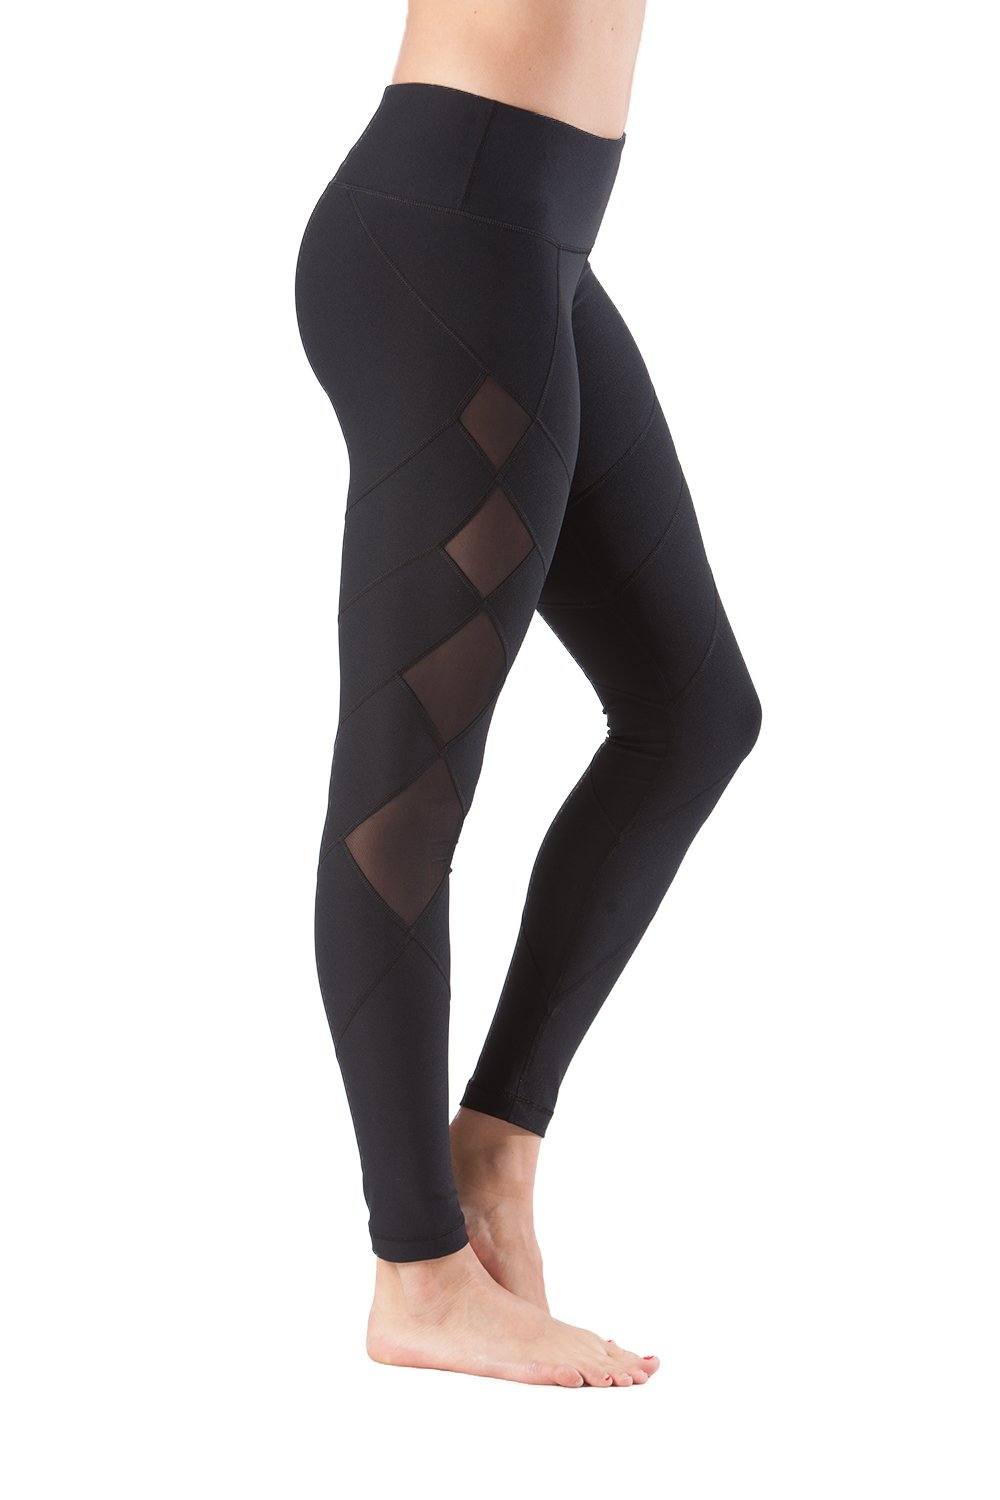 90 Degree By Reflex - Mid Calf Mesh Striped Legging